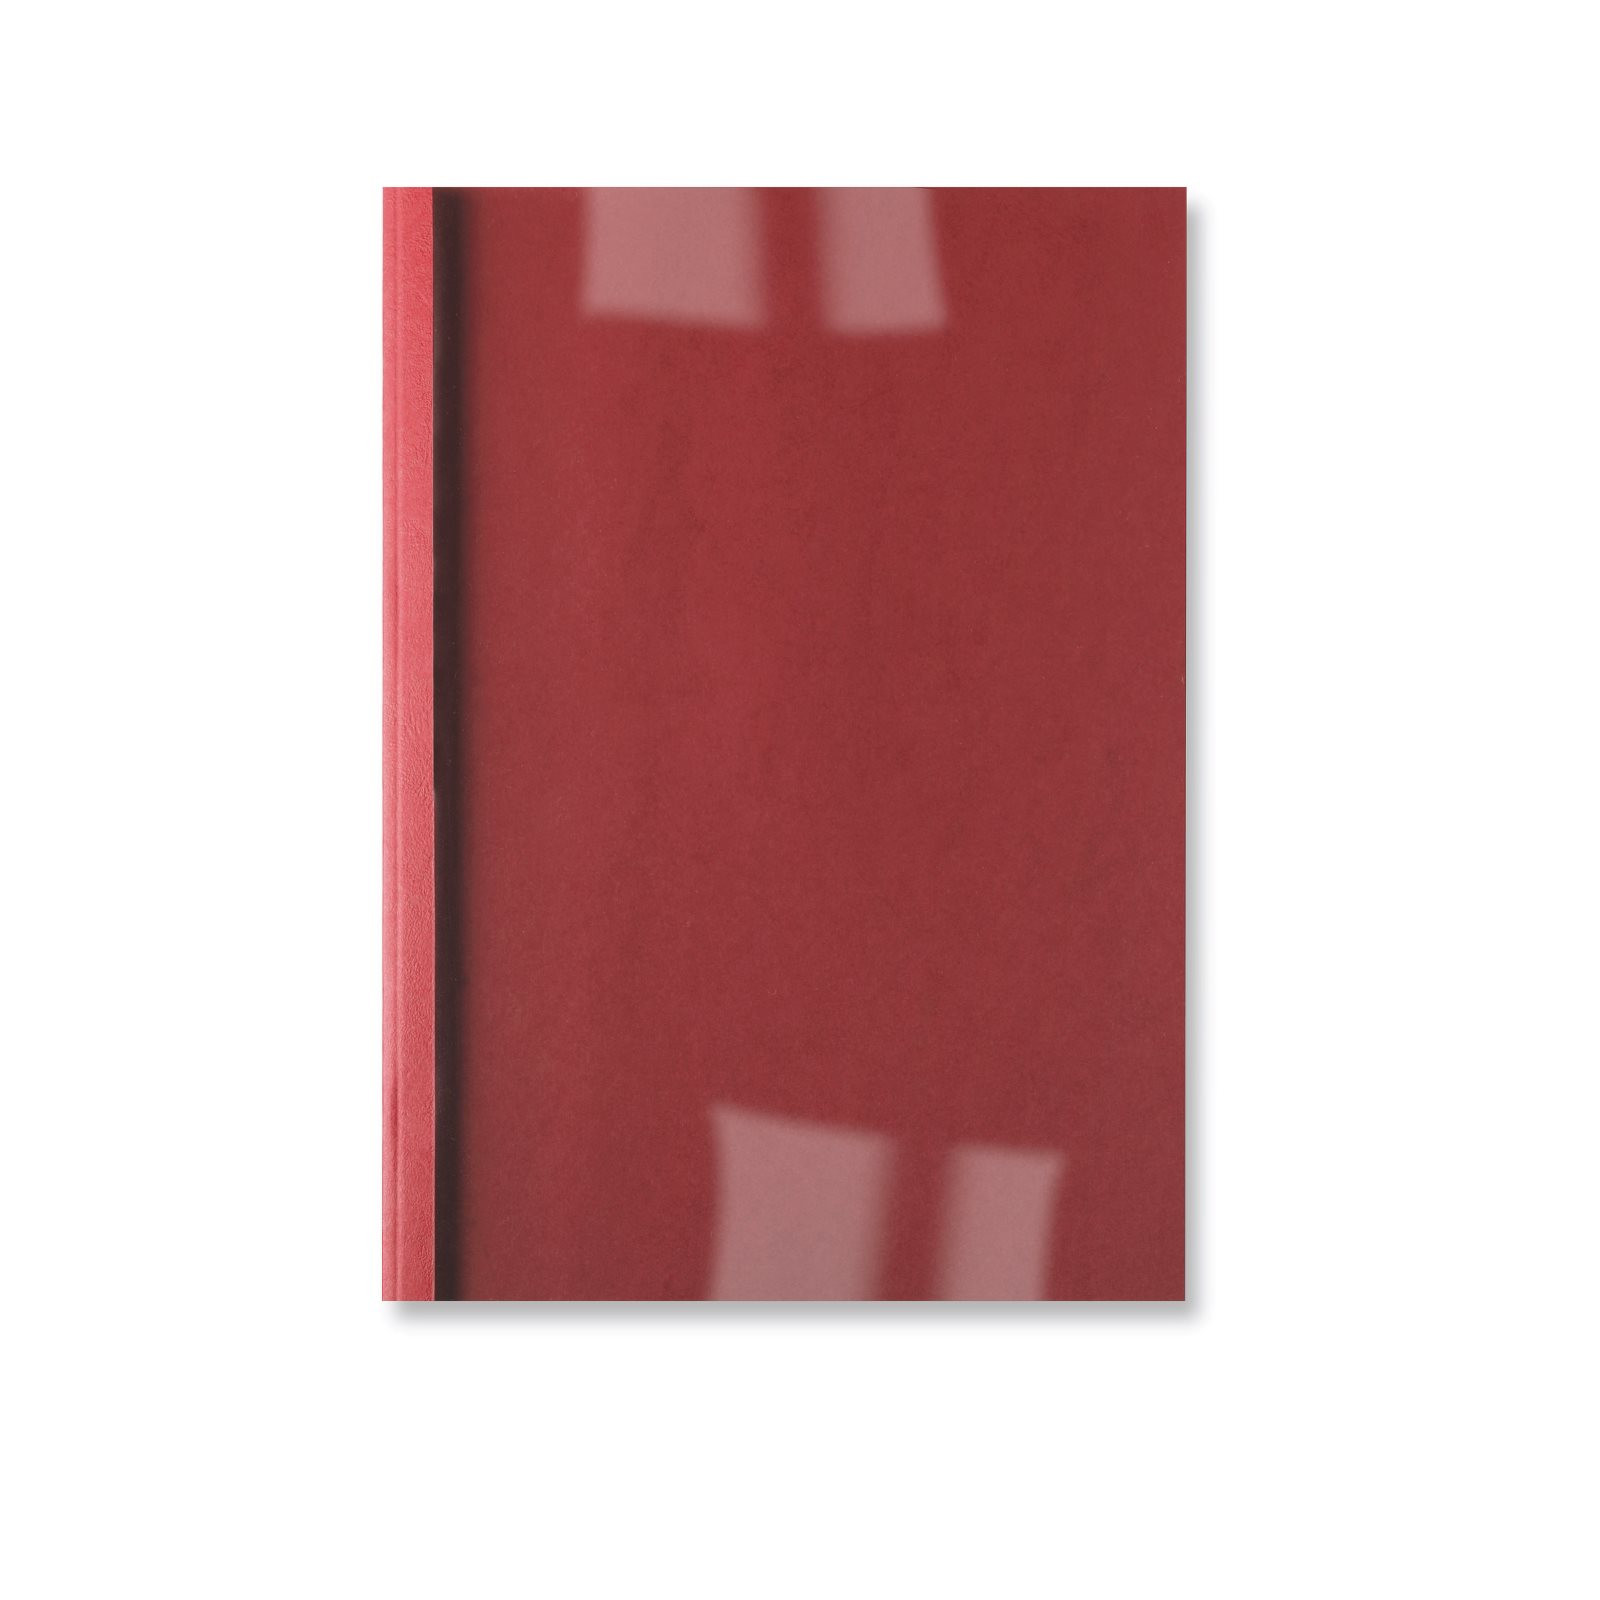 Thermal Binding Covers A4 1.5mm RD PK100